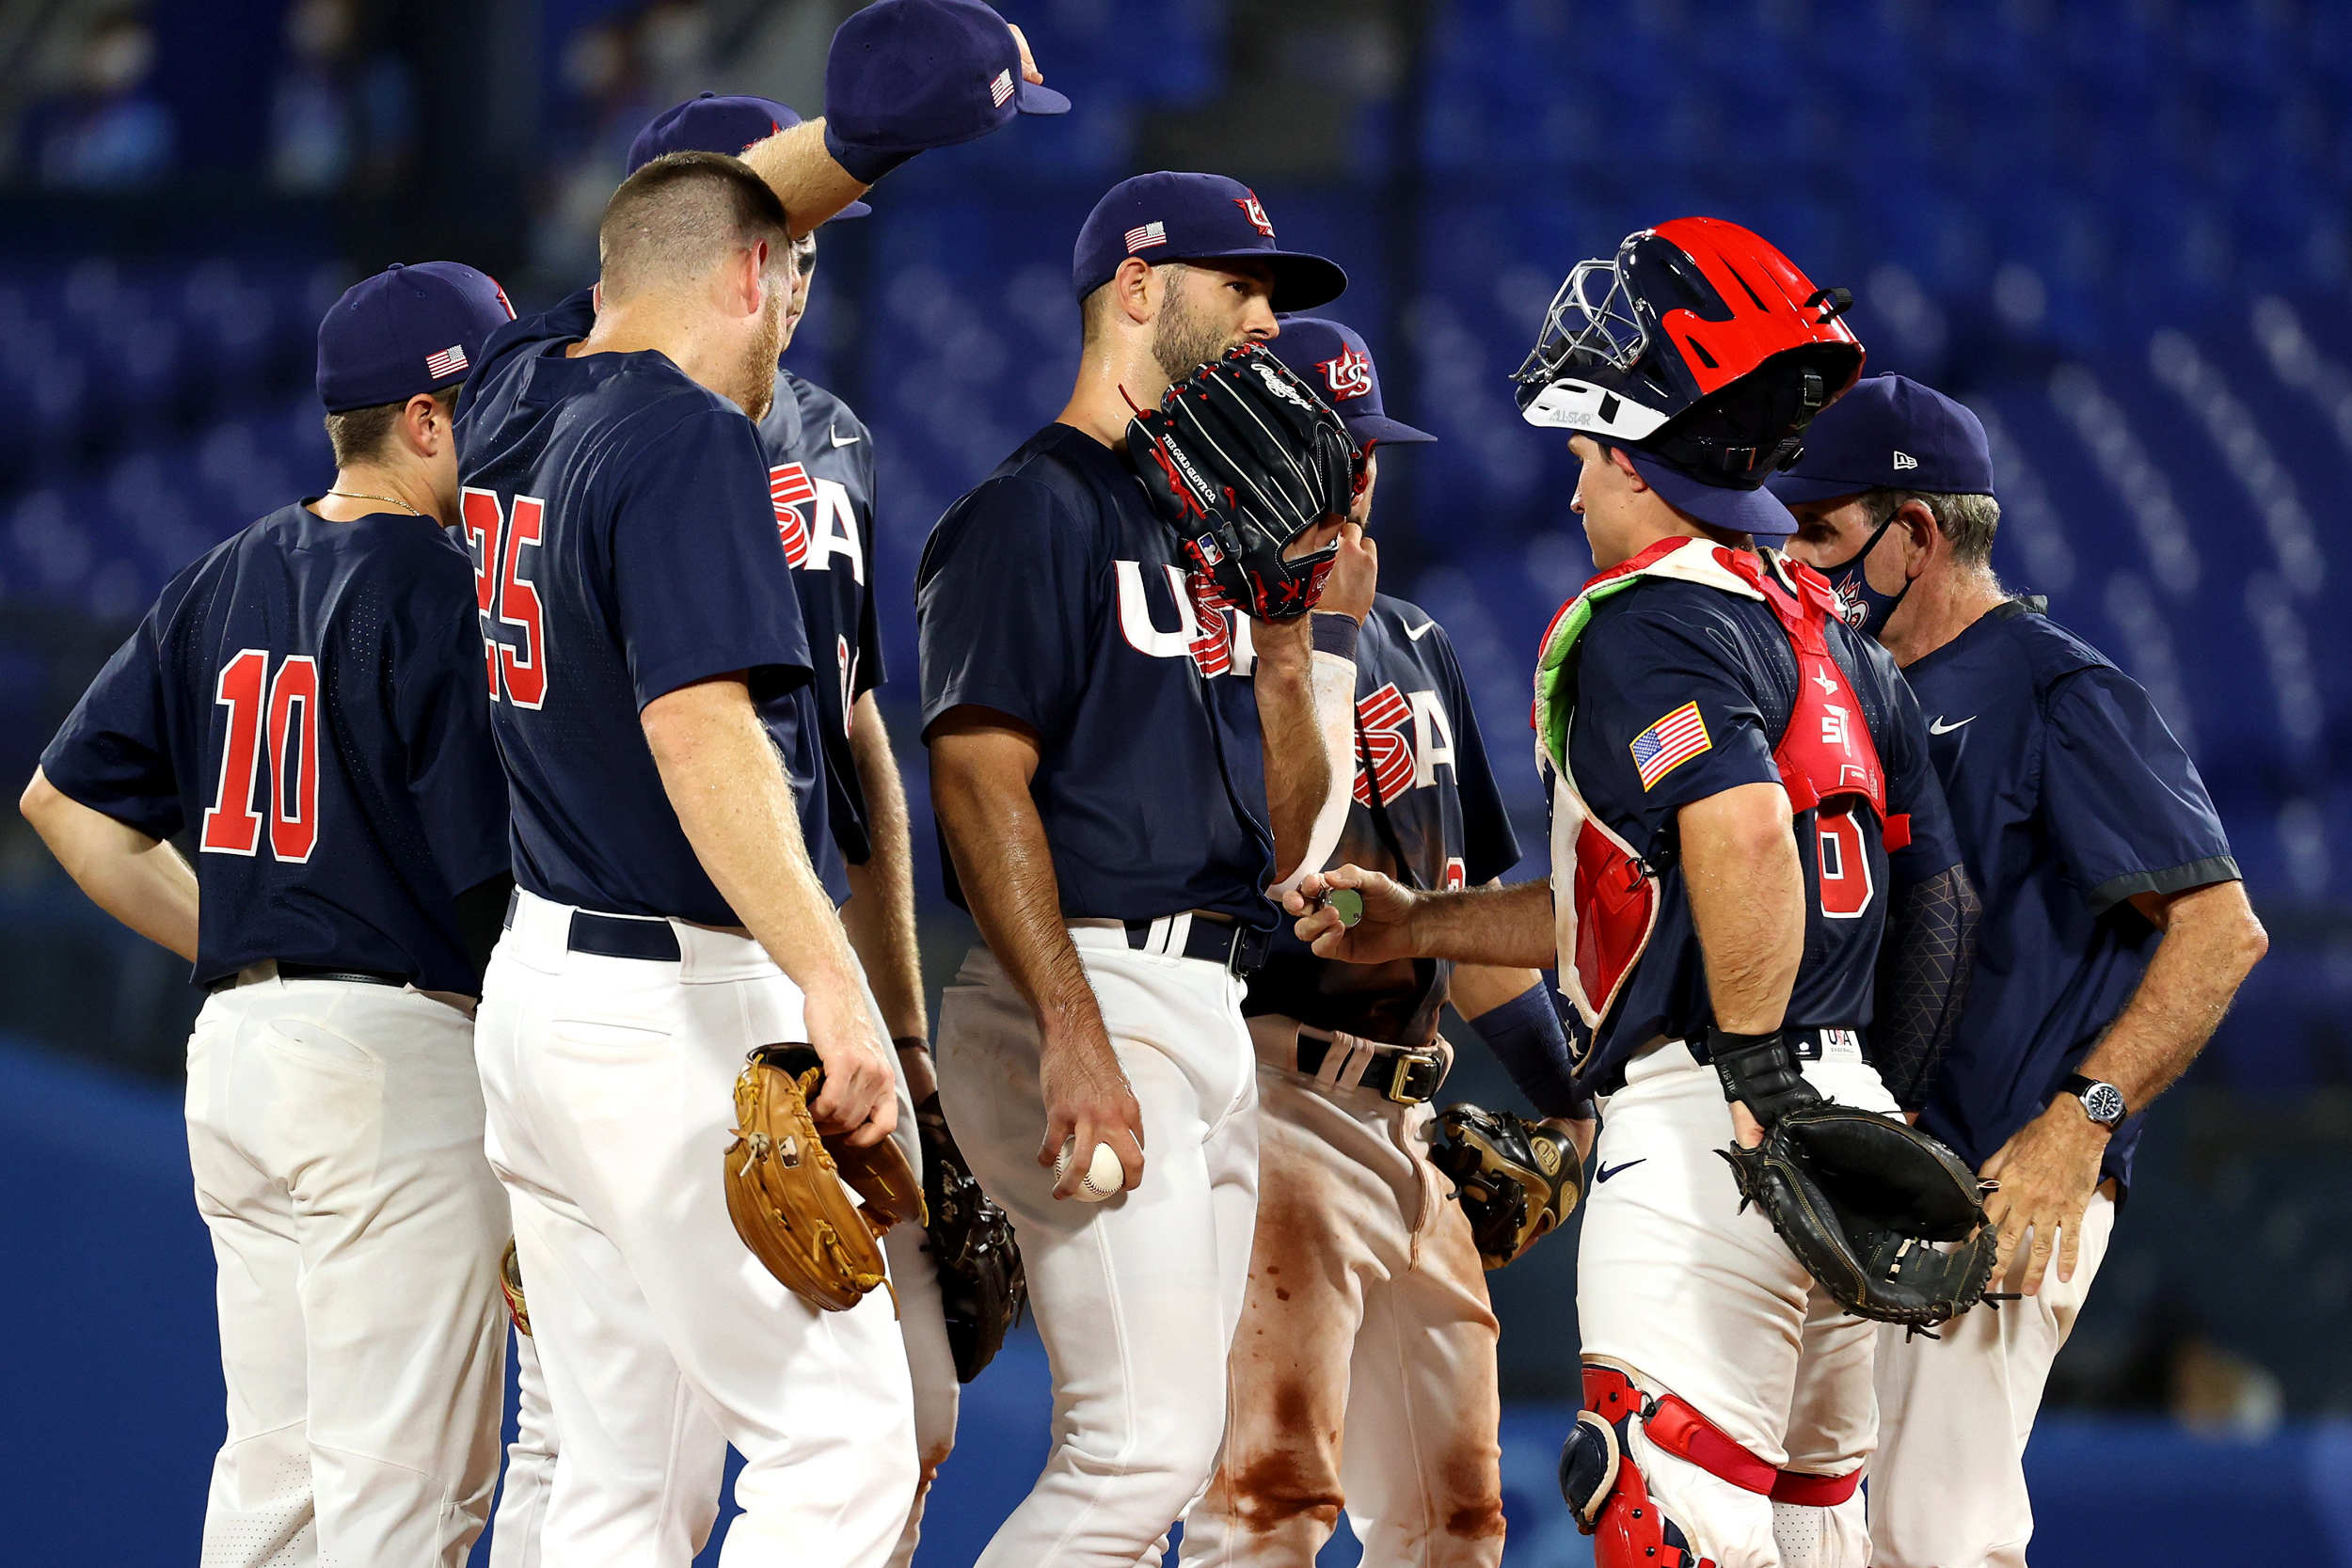 Team USA shut out by Japan, settles for baseball silver as hosts win cherished gold